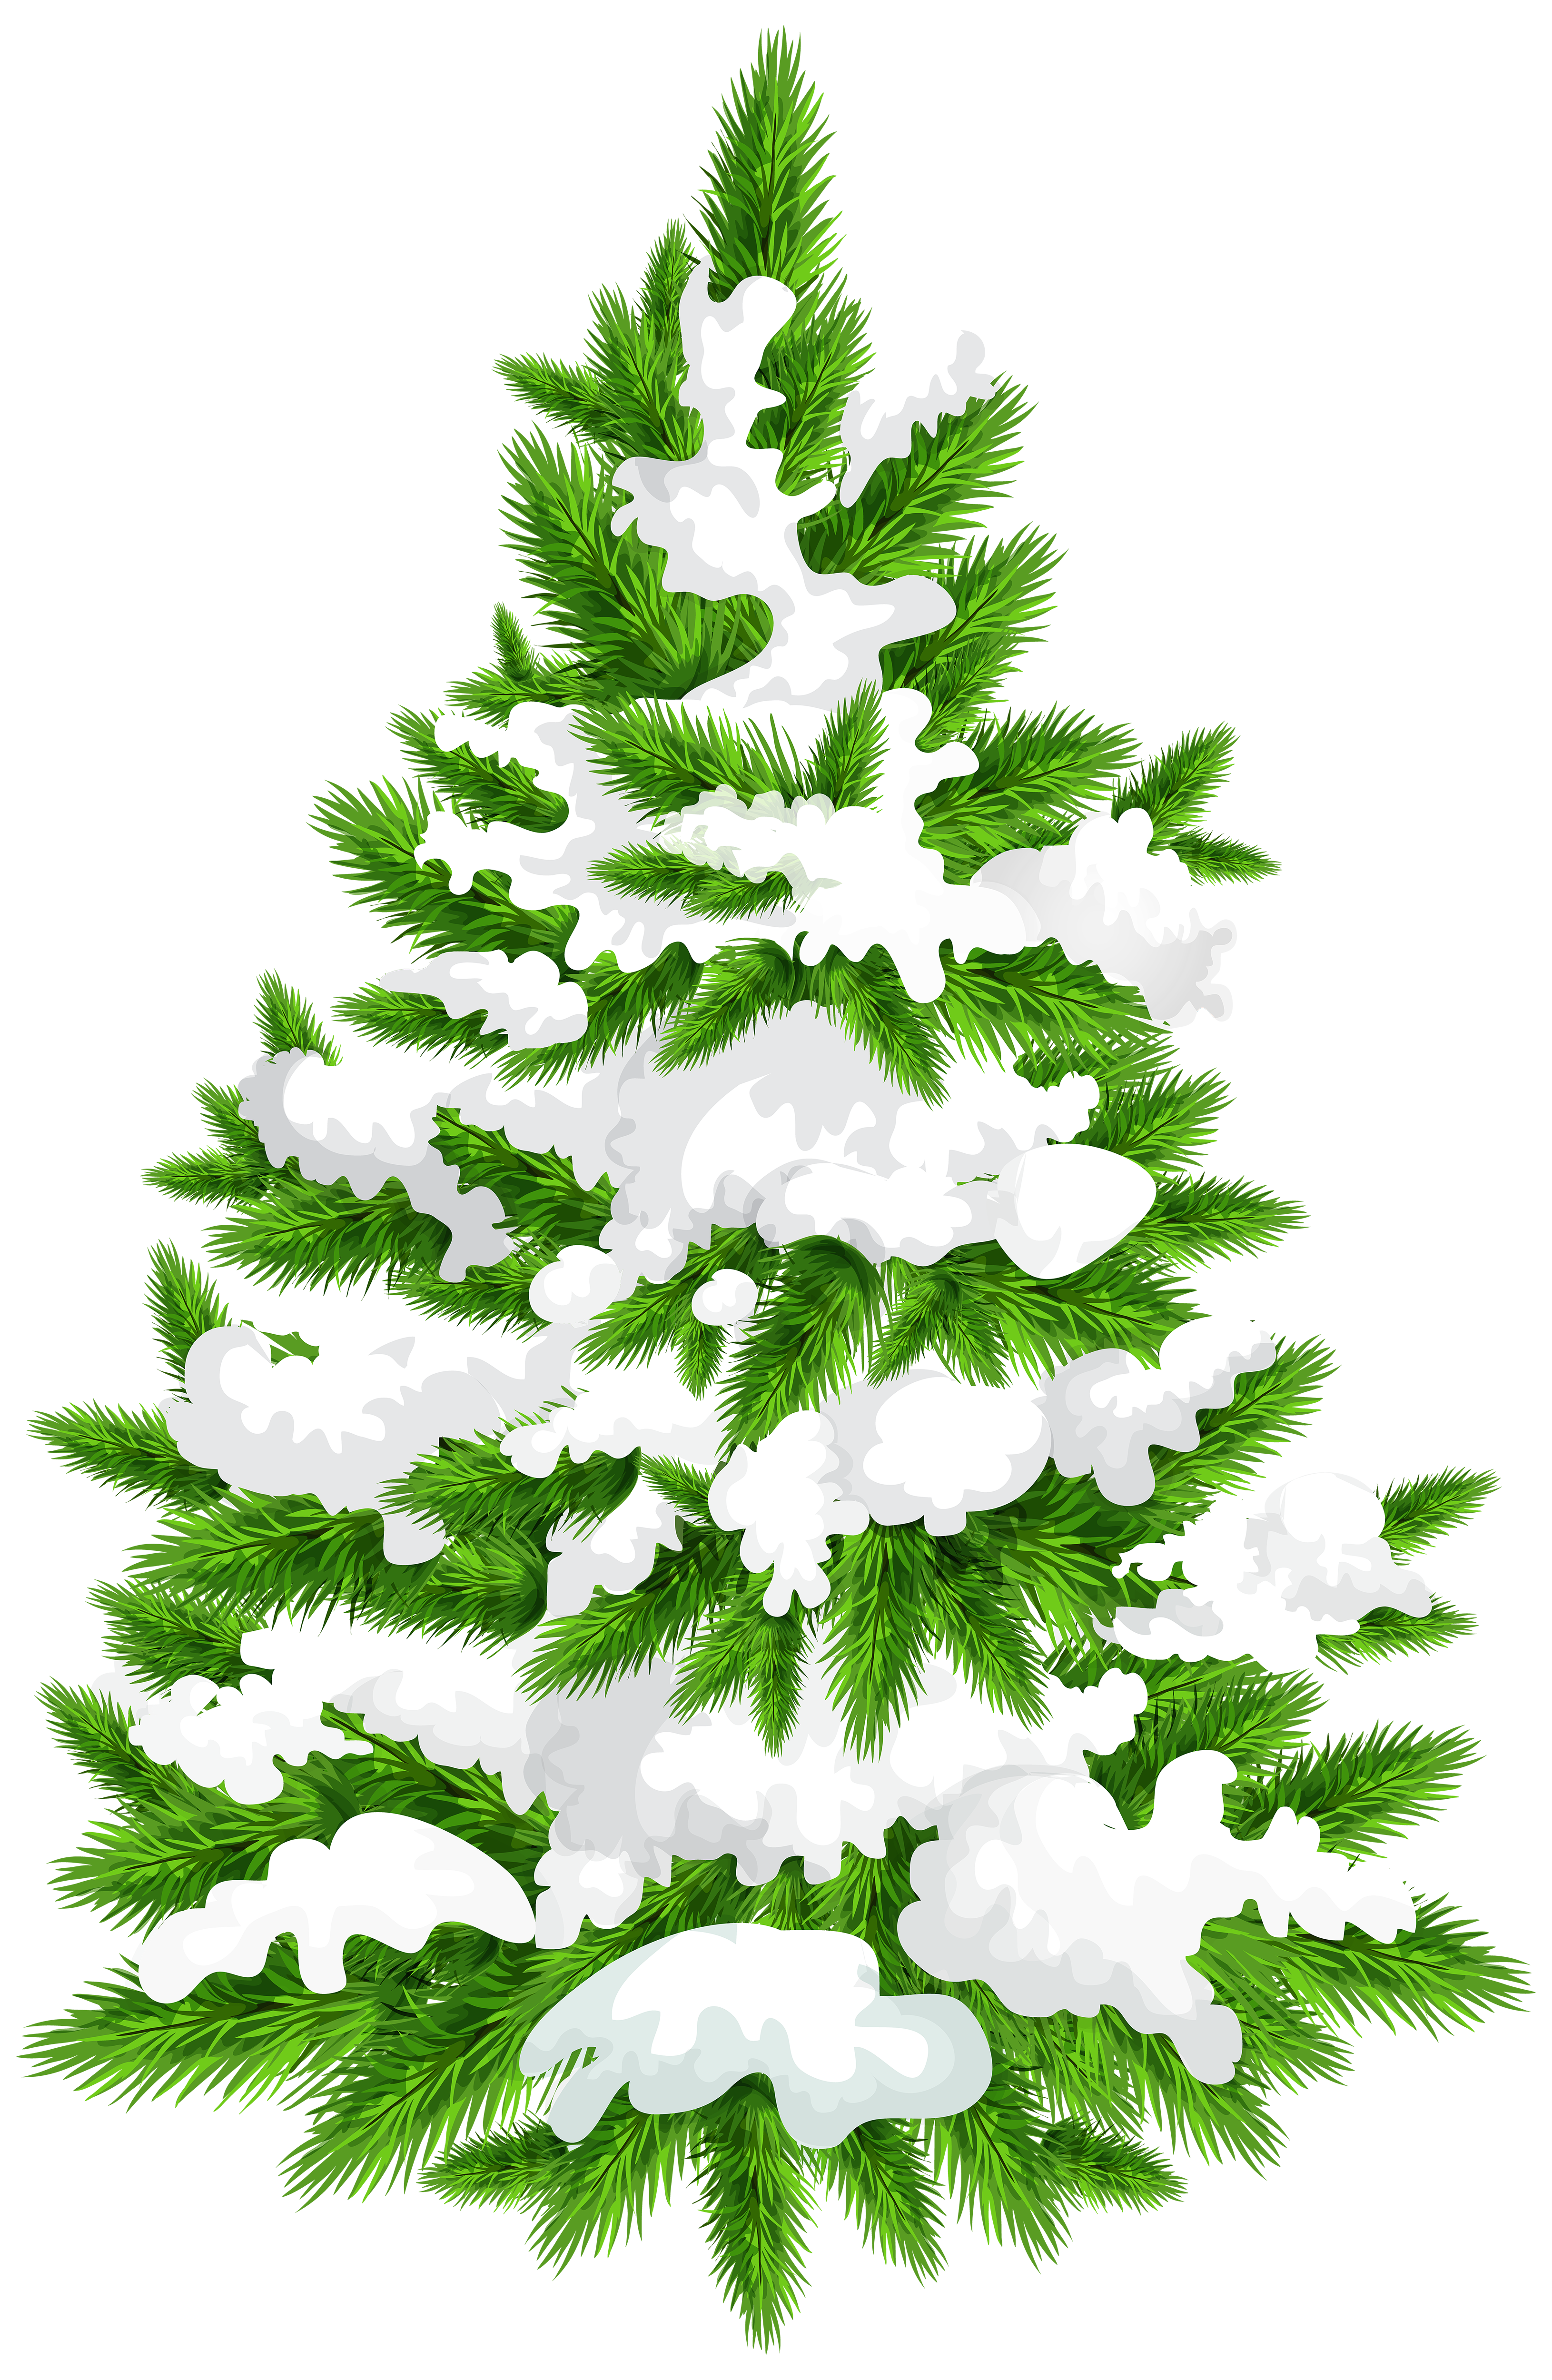 Snowy Pine Tree PNG Clip Art Image.